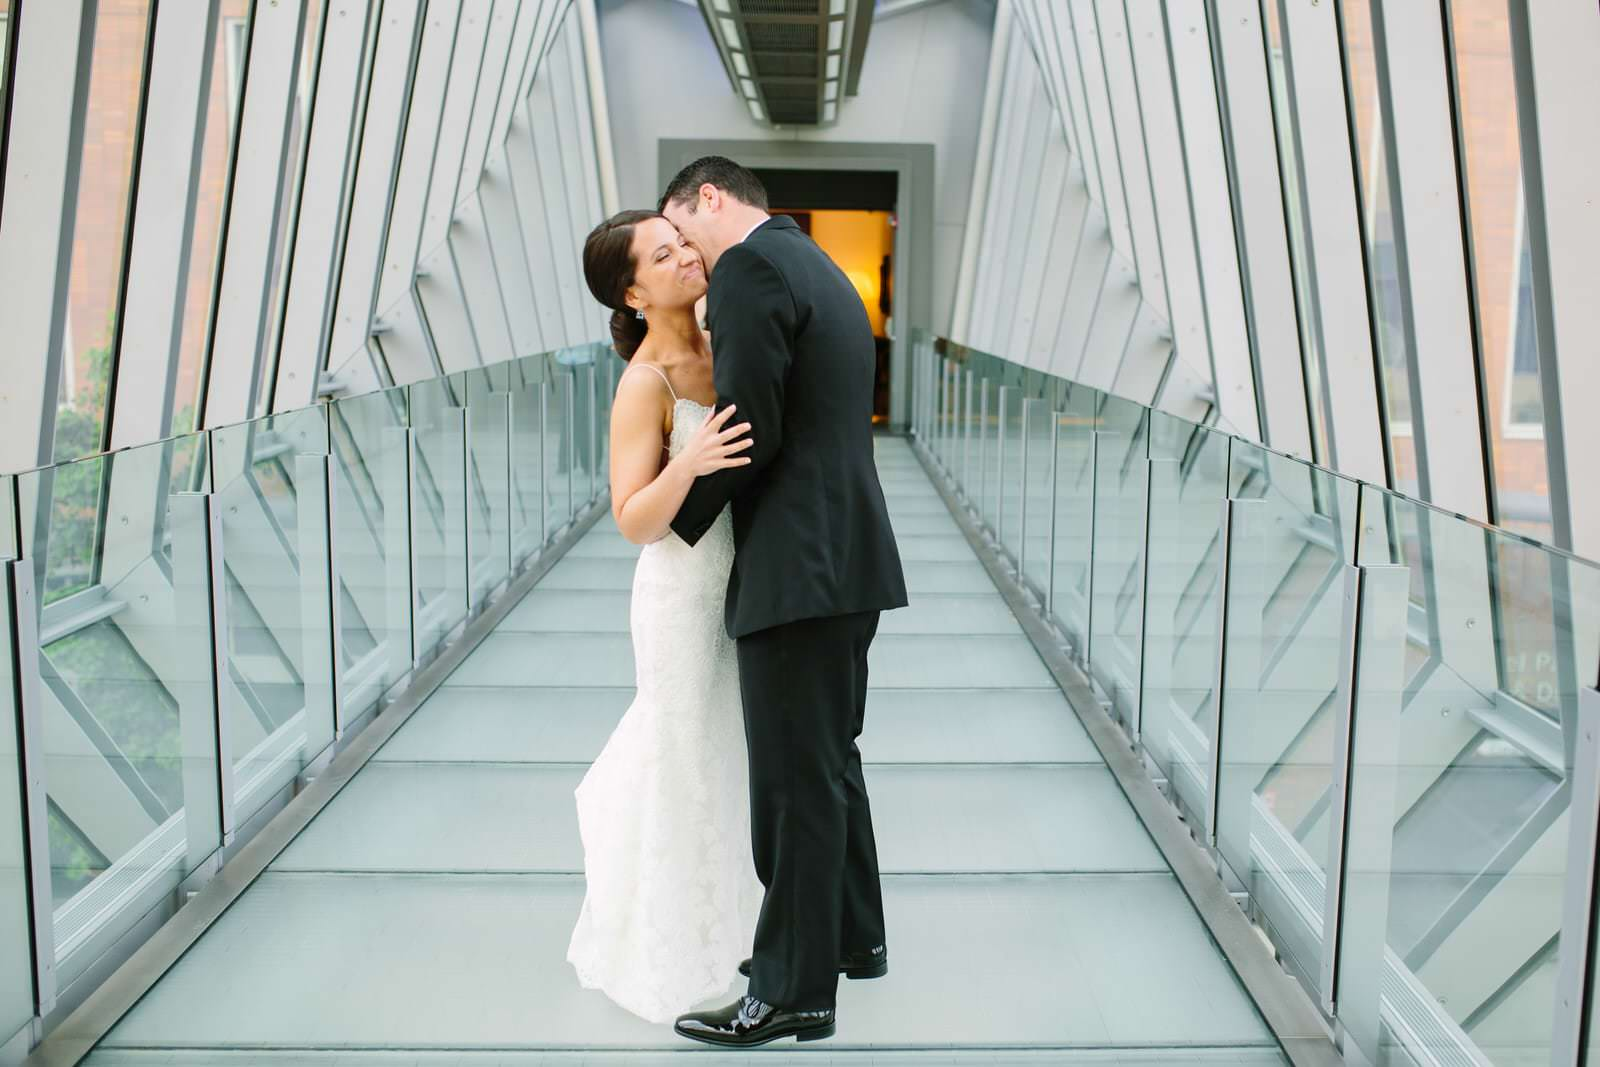 Talia-Brad-Jewish-Columbus-Museum-of-Art-wedding-photography-by-Amy-Ann-00021